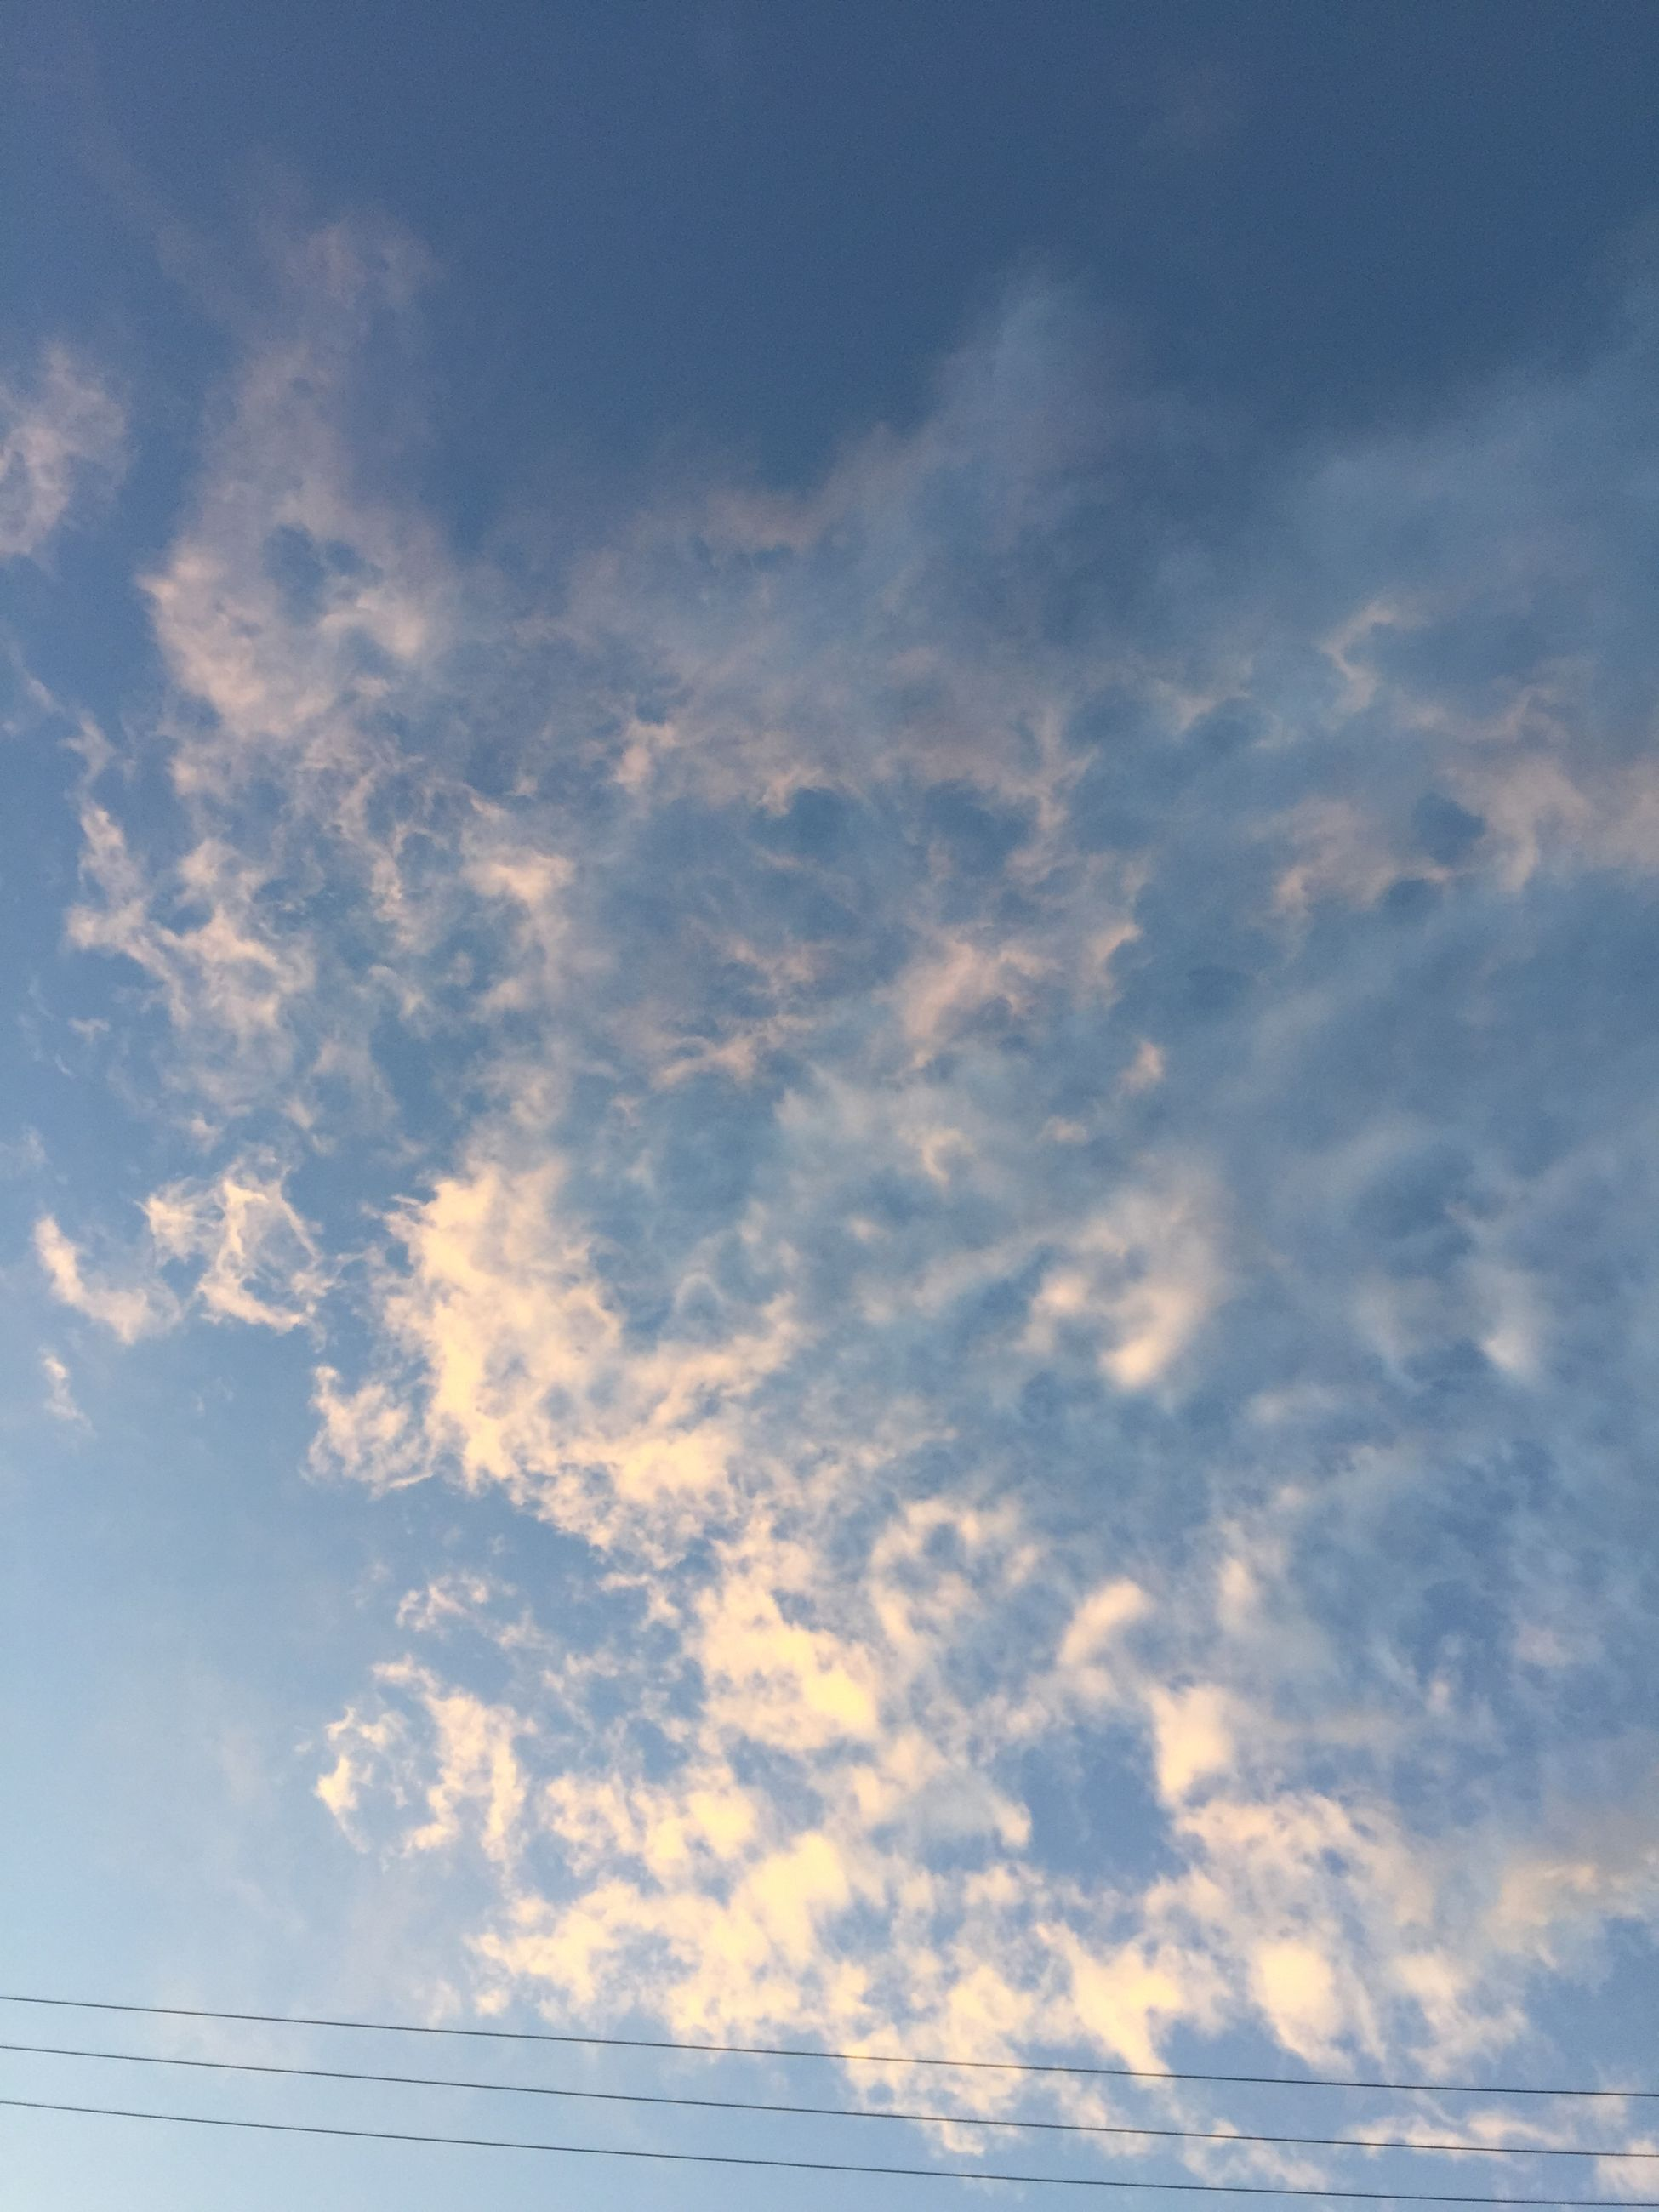 sky, low angle view, cloud - sky, beauty in nature, tranquility, cloudy, scenics, blue, nature, cloud, tranquil scene, backgrounds, sky only, cloudscape, full frame, idyllic, outdoors, no people, day, white color